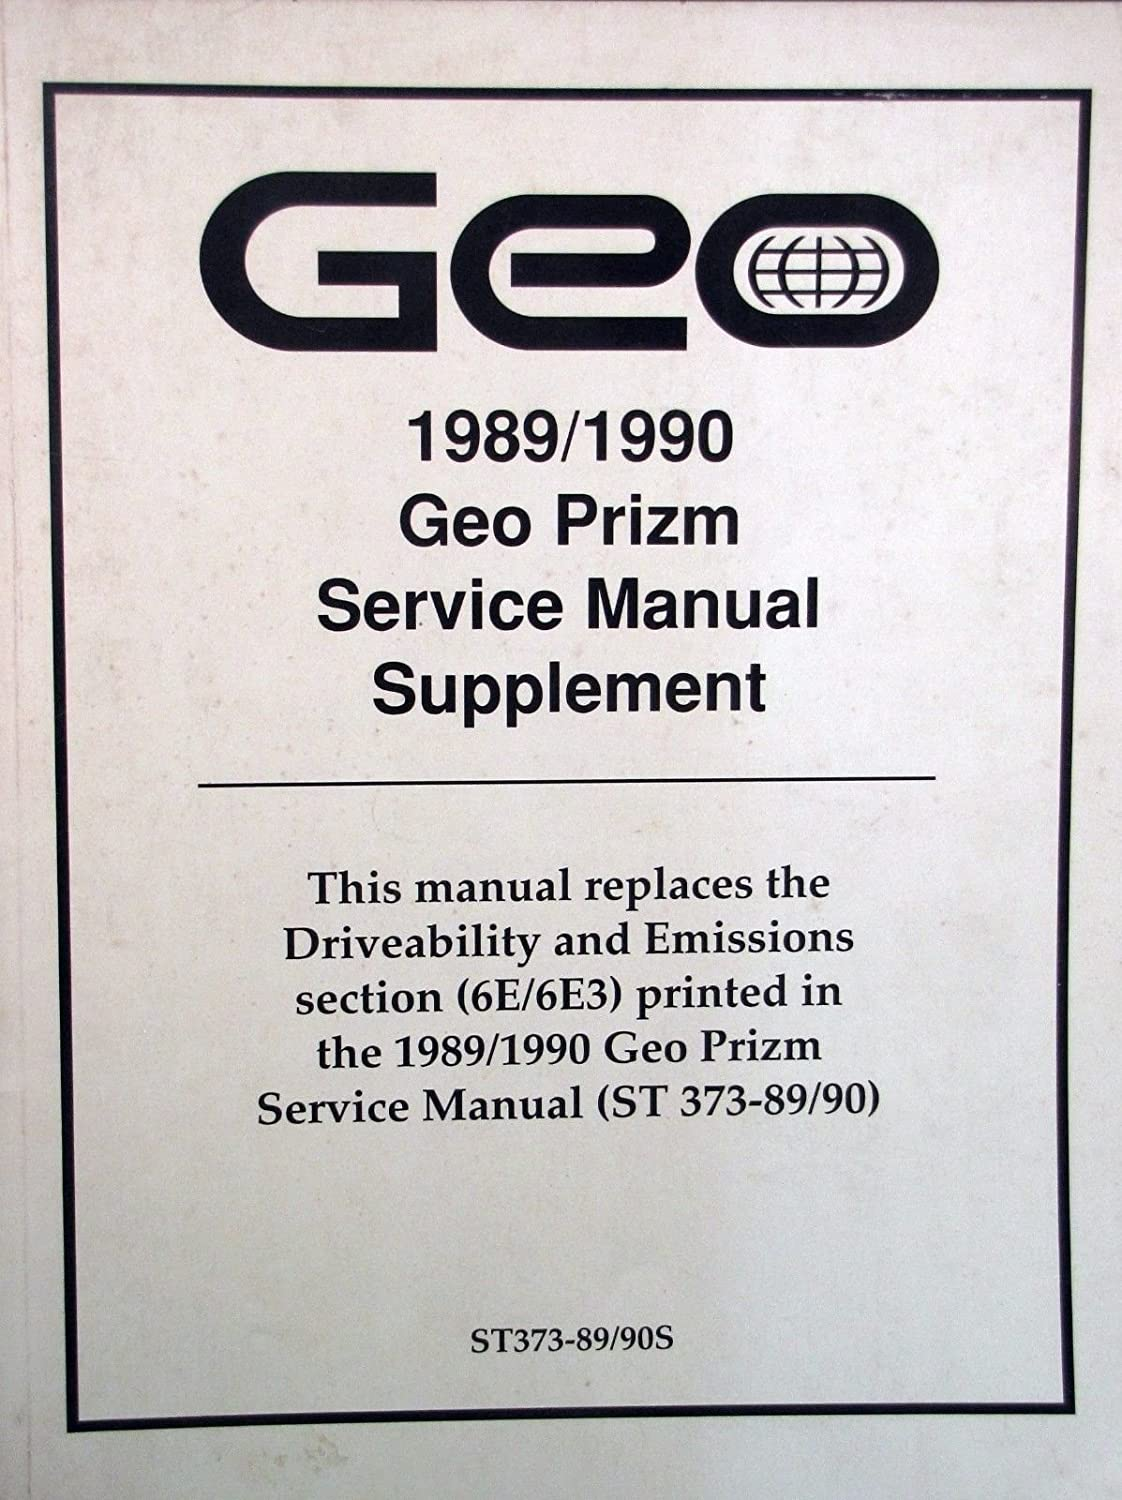 Amazon.com : 1989-90 Geo PRIZM Service Manual Supplement - 6E/6E3 :  Everything Else